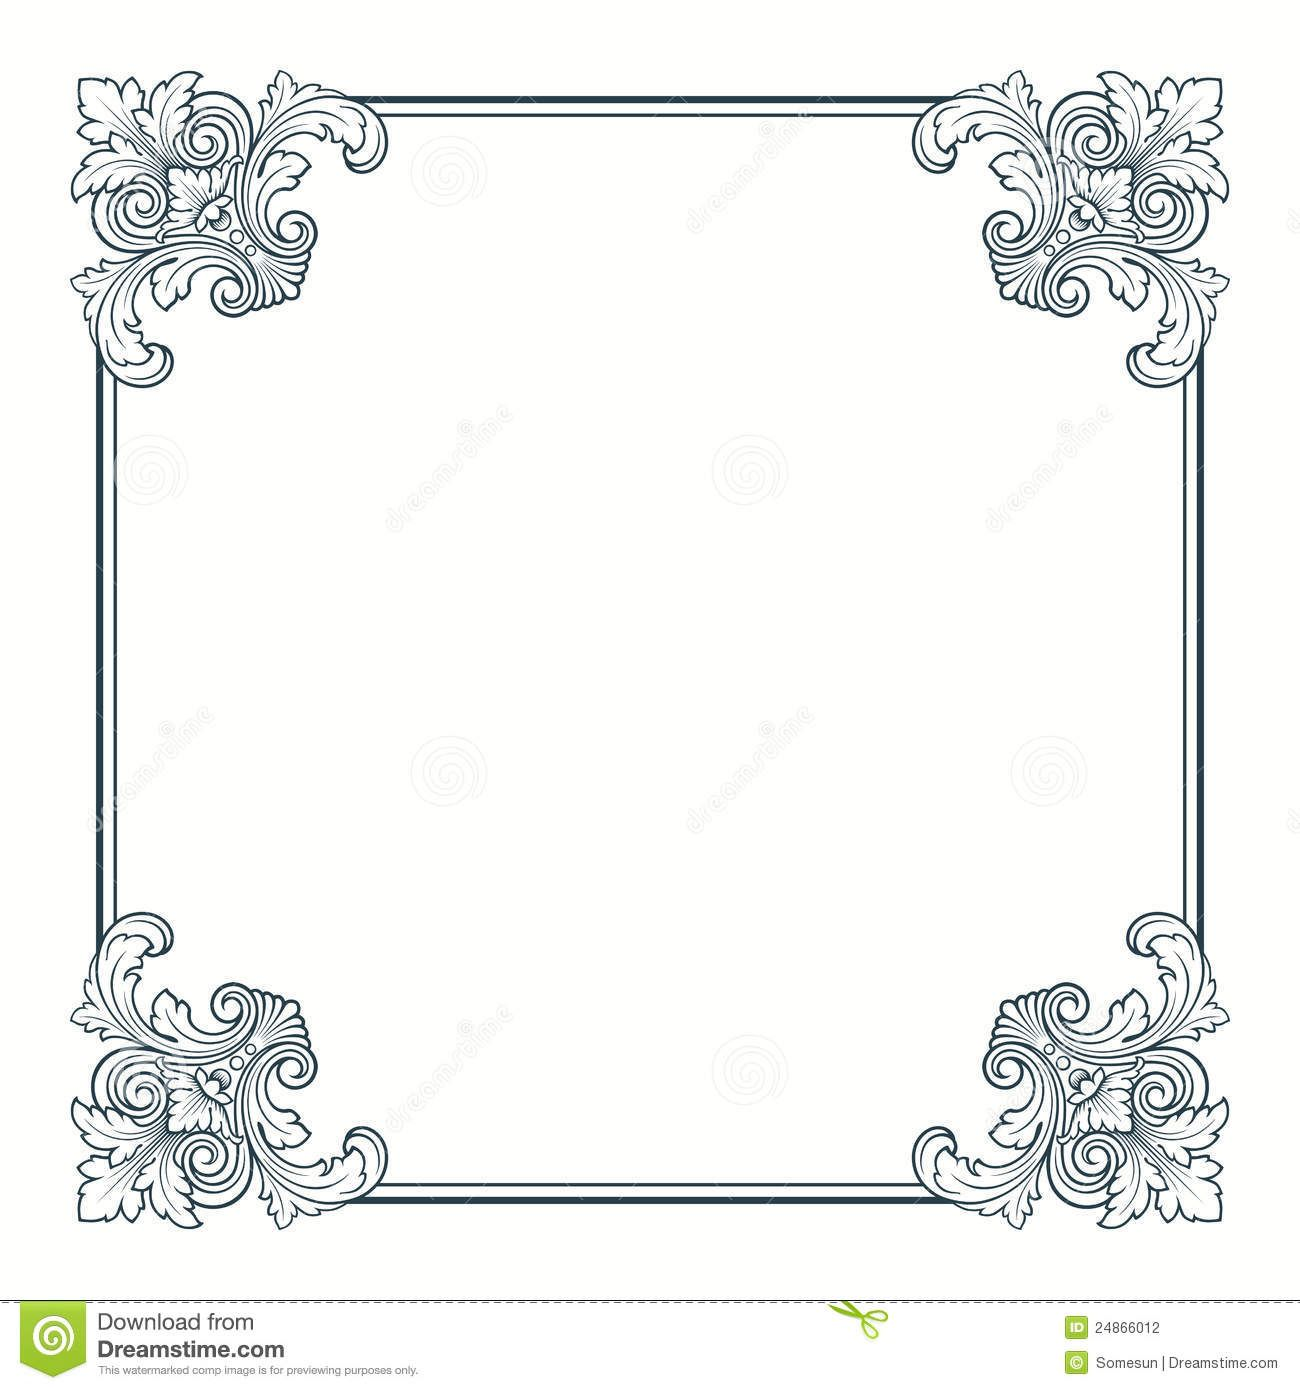 vector calligraphic ornate vintage frame border download